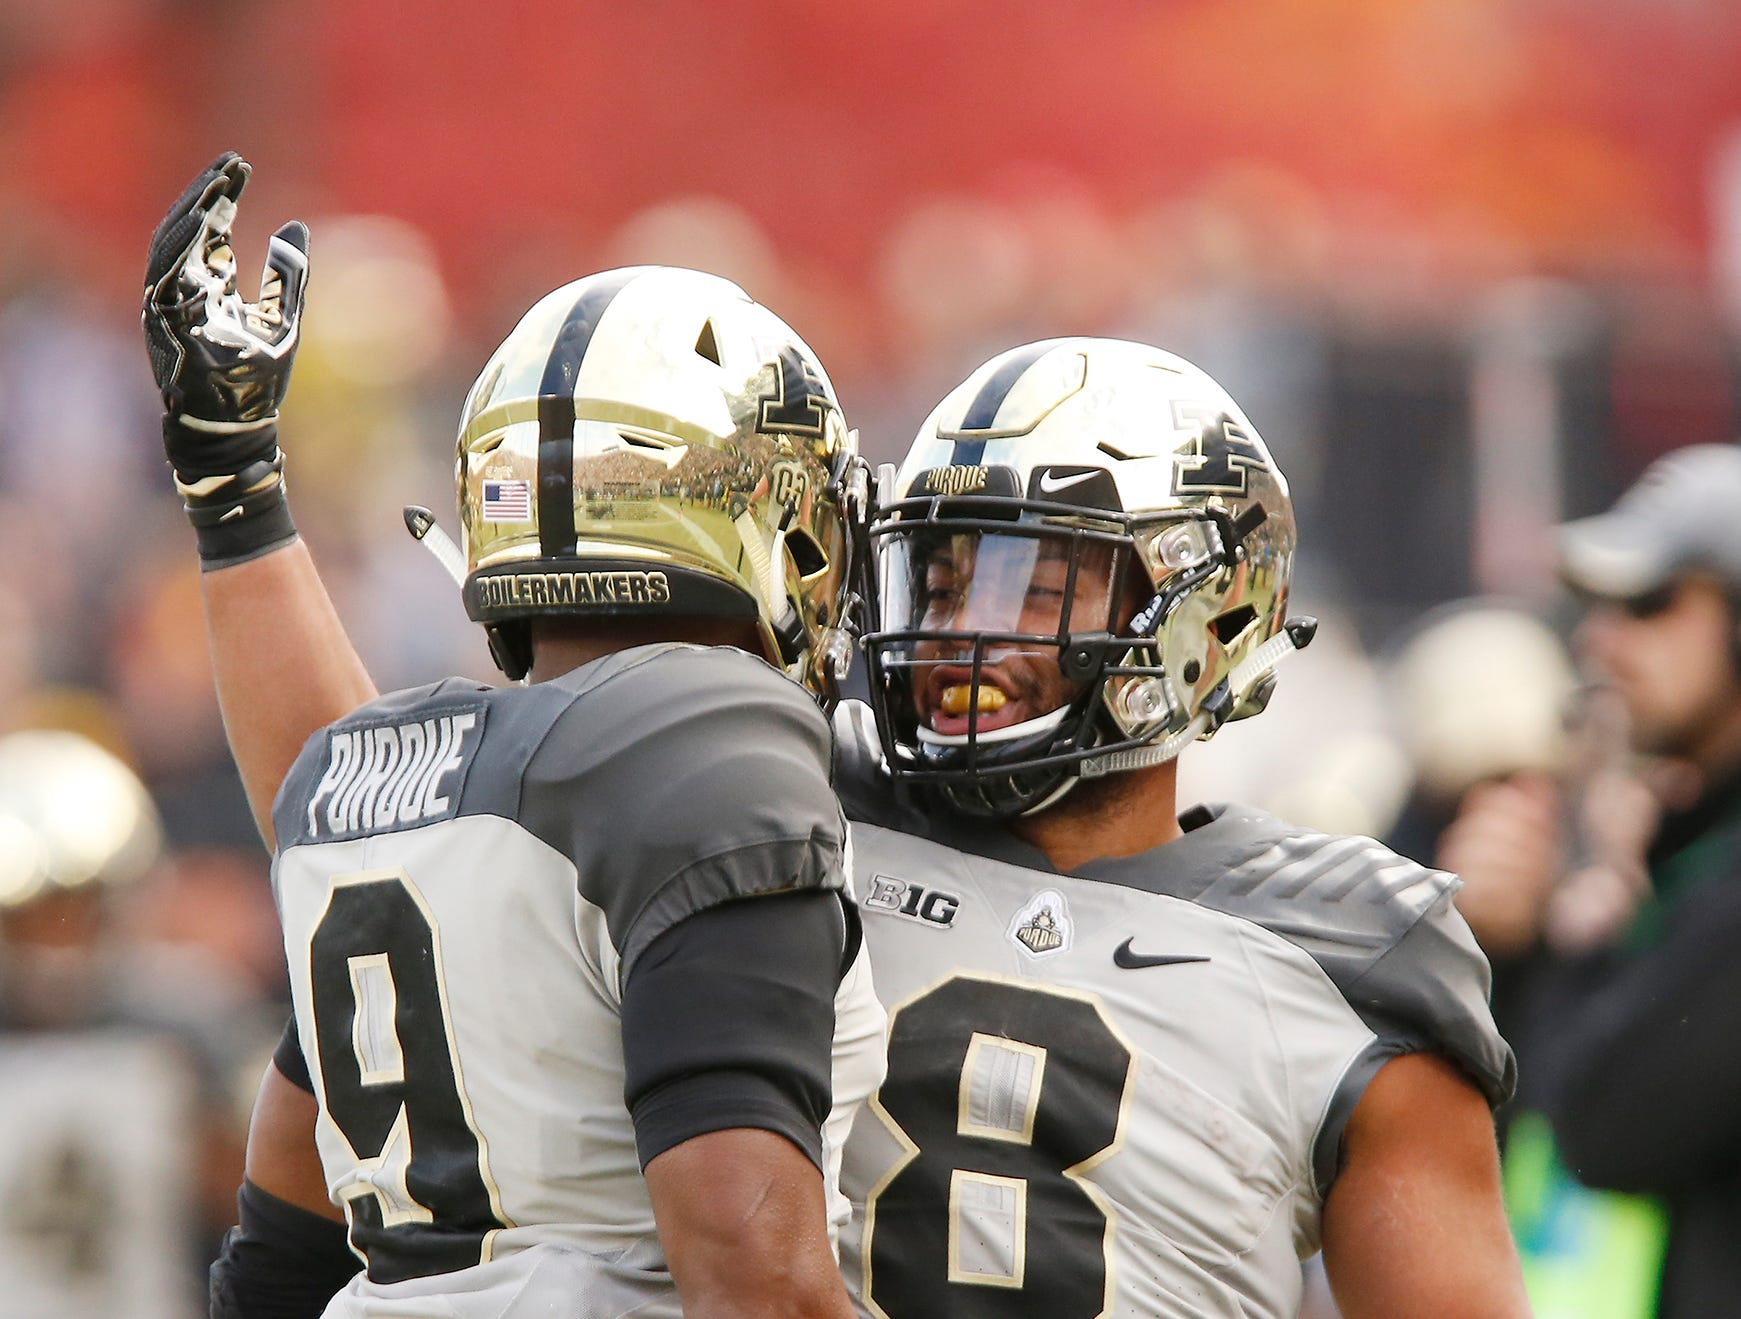 Markell Jones of Purdue celebrates with Terry Wright after Wright's touchdown reception at 6:27 in the second quarter against Iowa Saturday, November 3, 2018, at Ross-Ade Stadium. Purdue defeated Iowa 38-36.